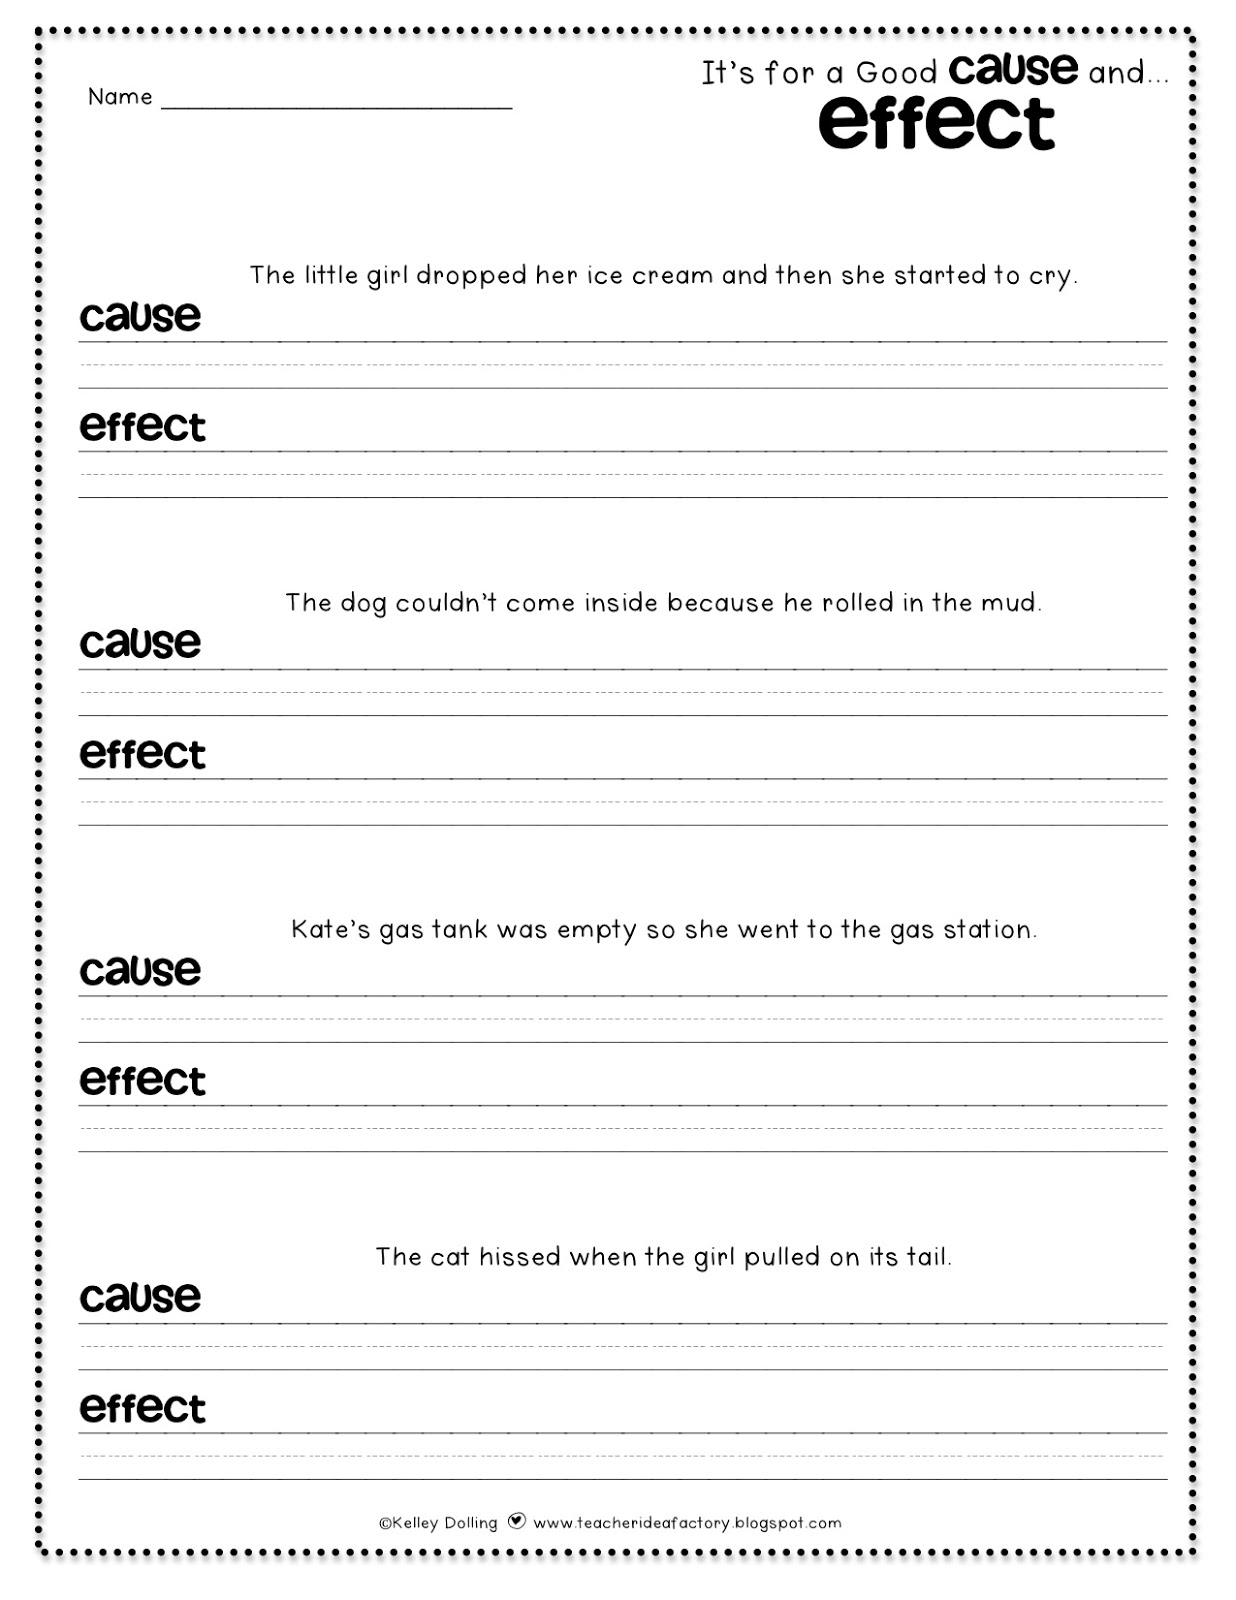 12 Easy Cause And Effect Activities And Worksheets